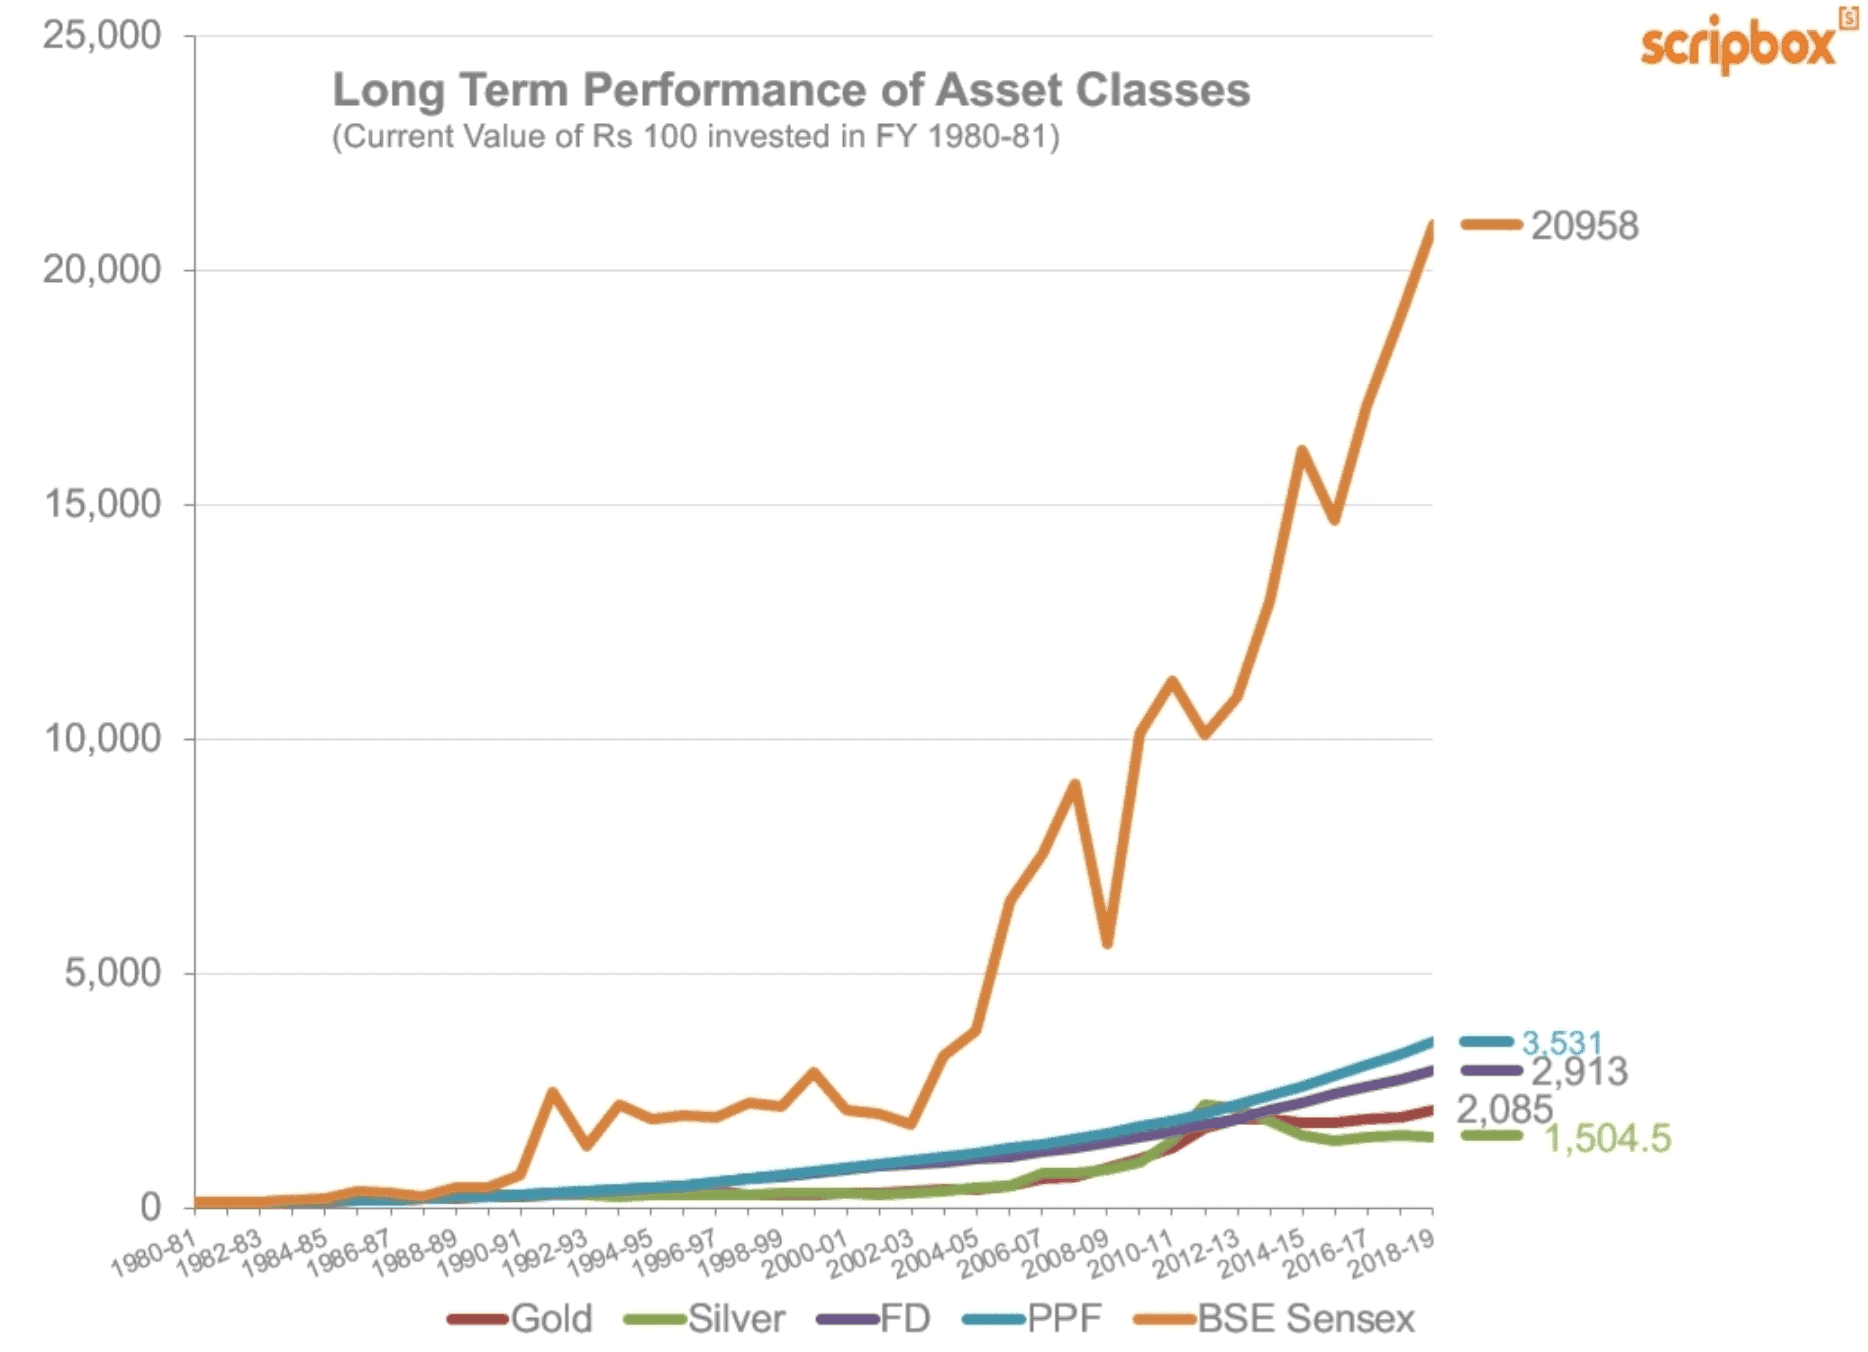 Long Term Performance of Asset Class